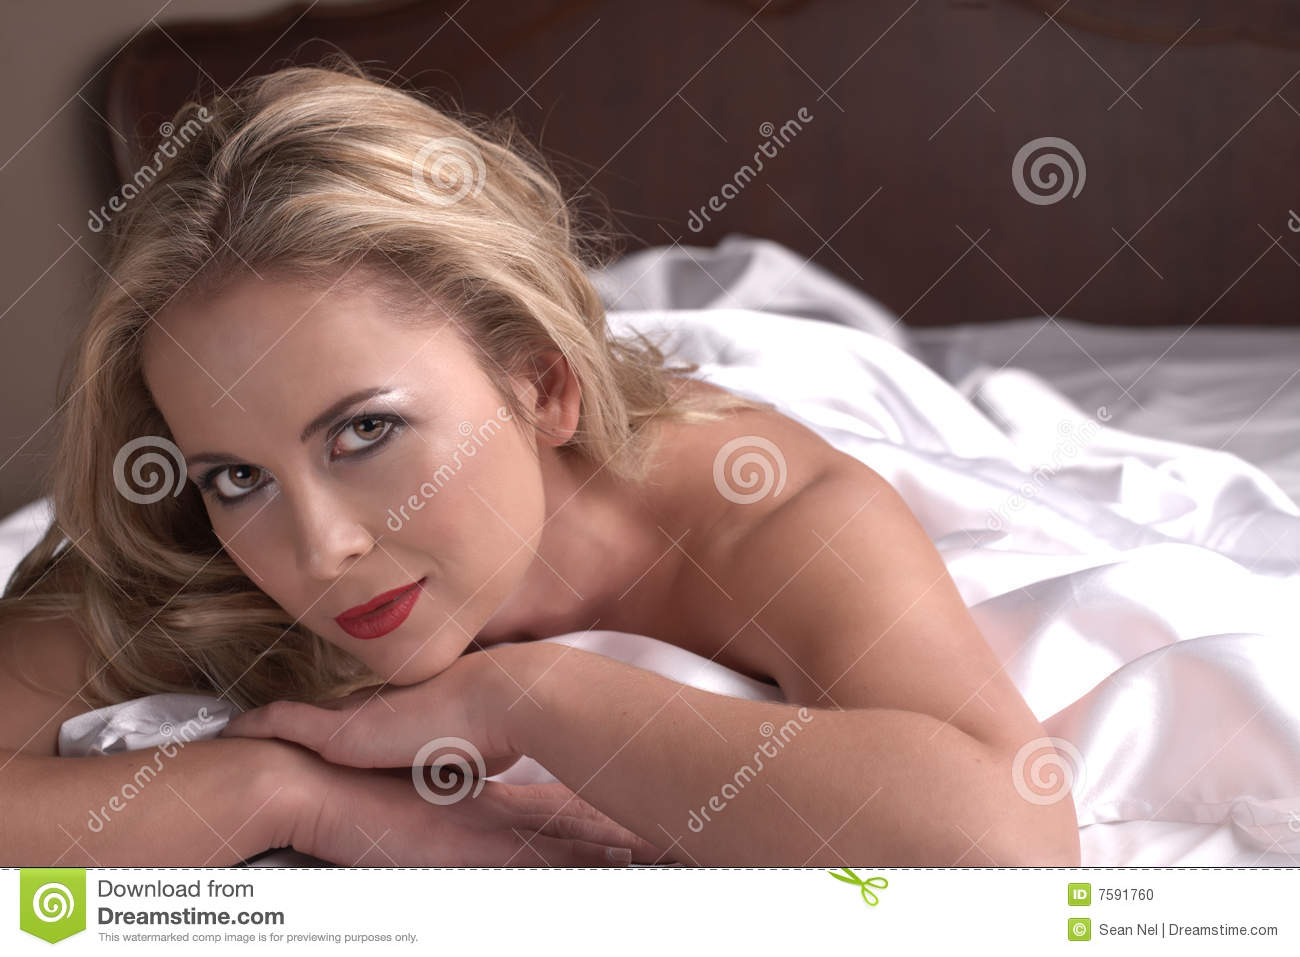 Adult nude woman picture